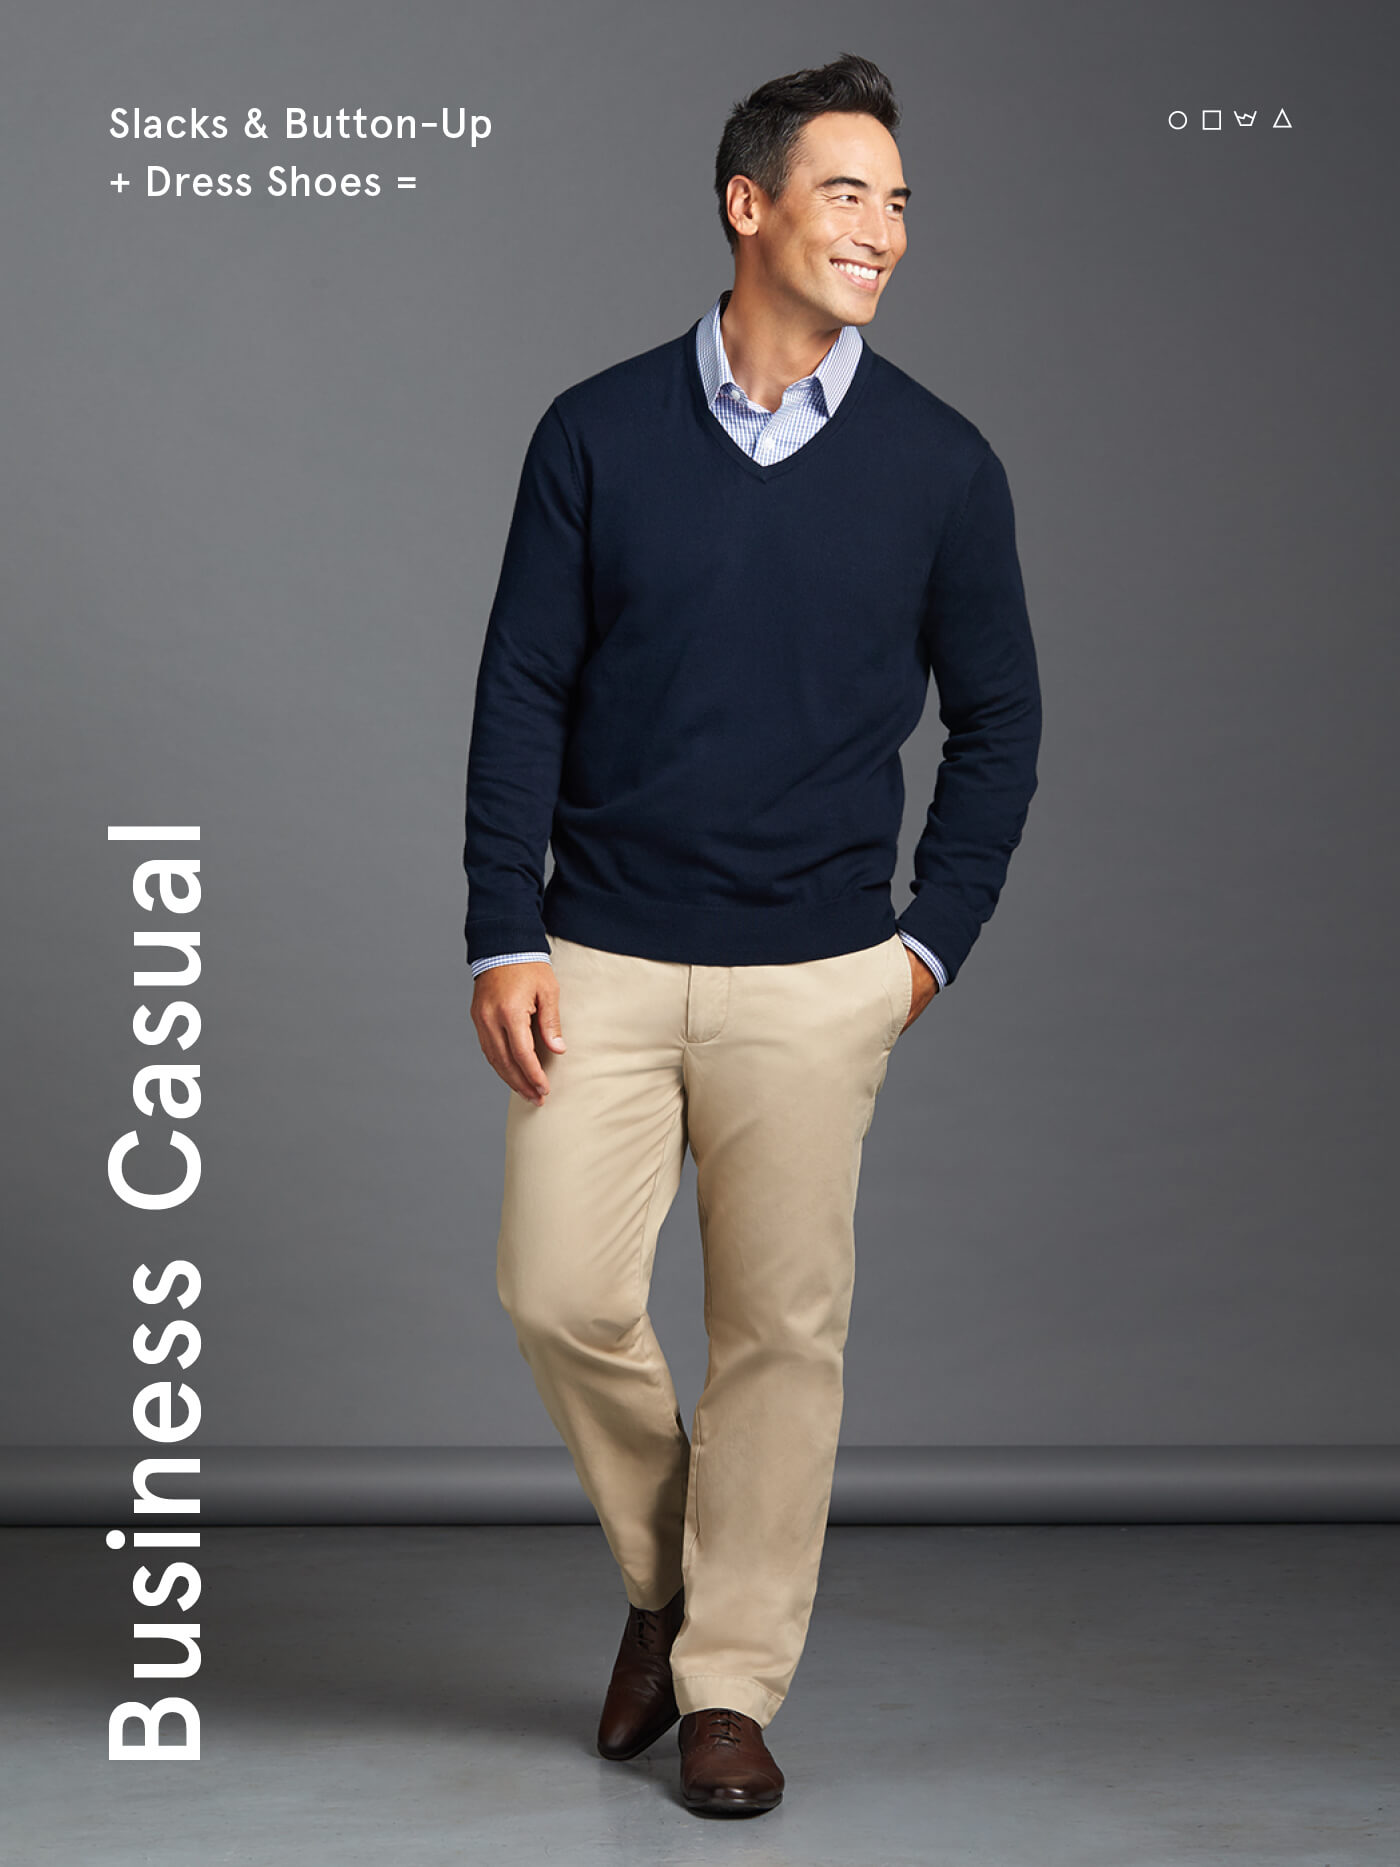 5179c4161b2a what is business casual for men  slack and a button-up with dress shoes